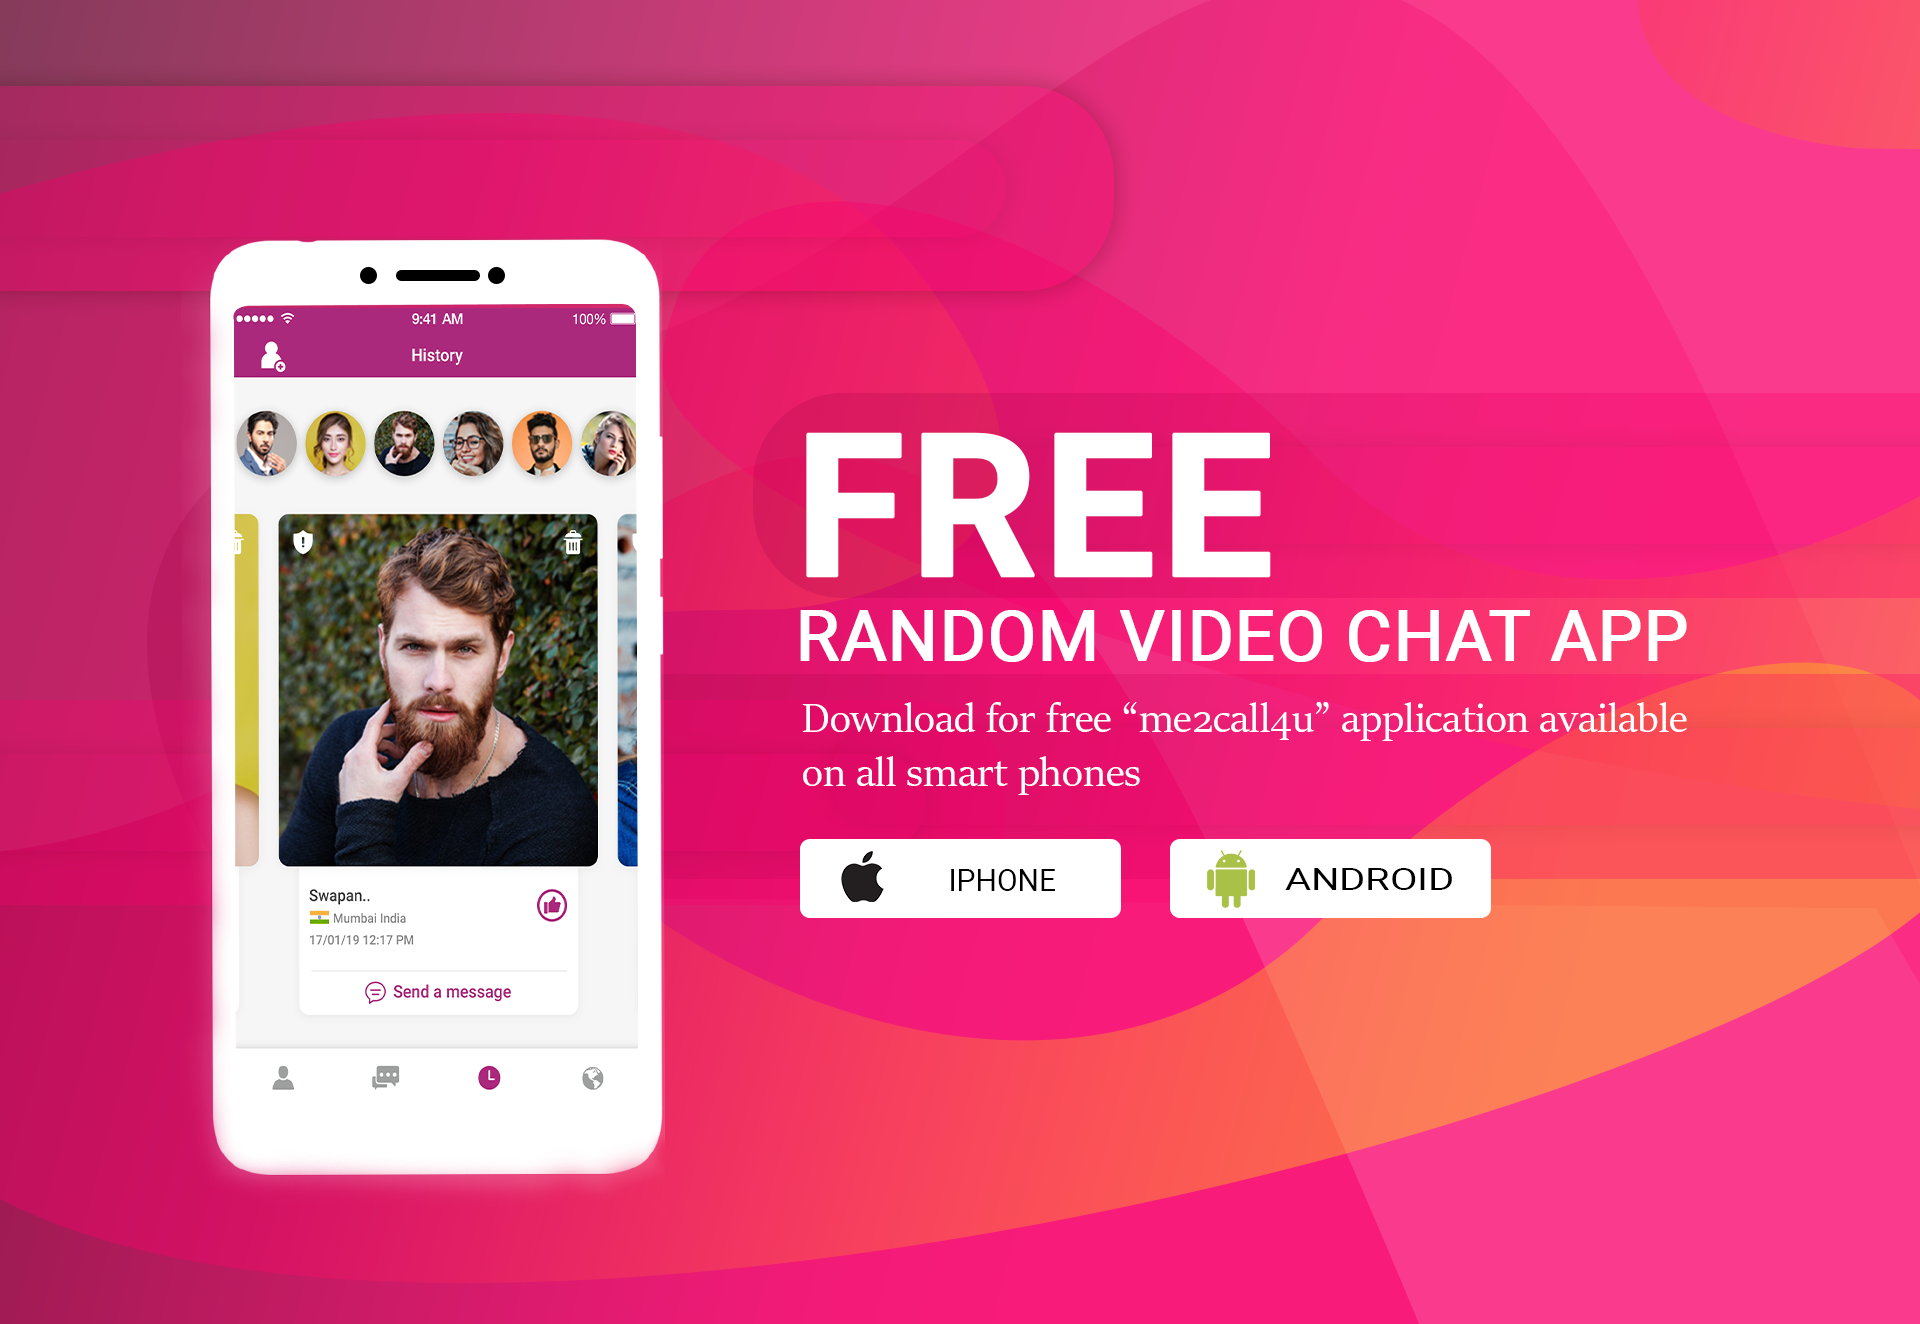 Strangers with free chat app video live Free Random